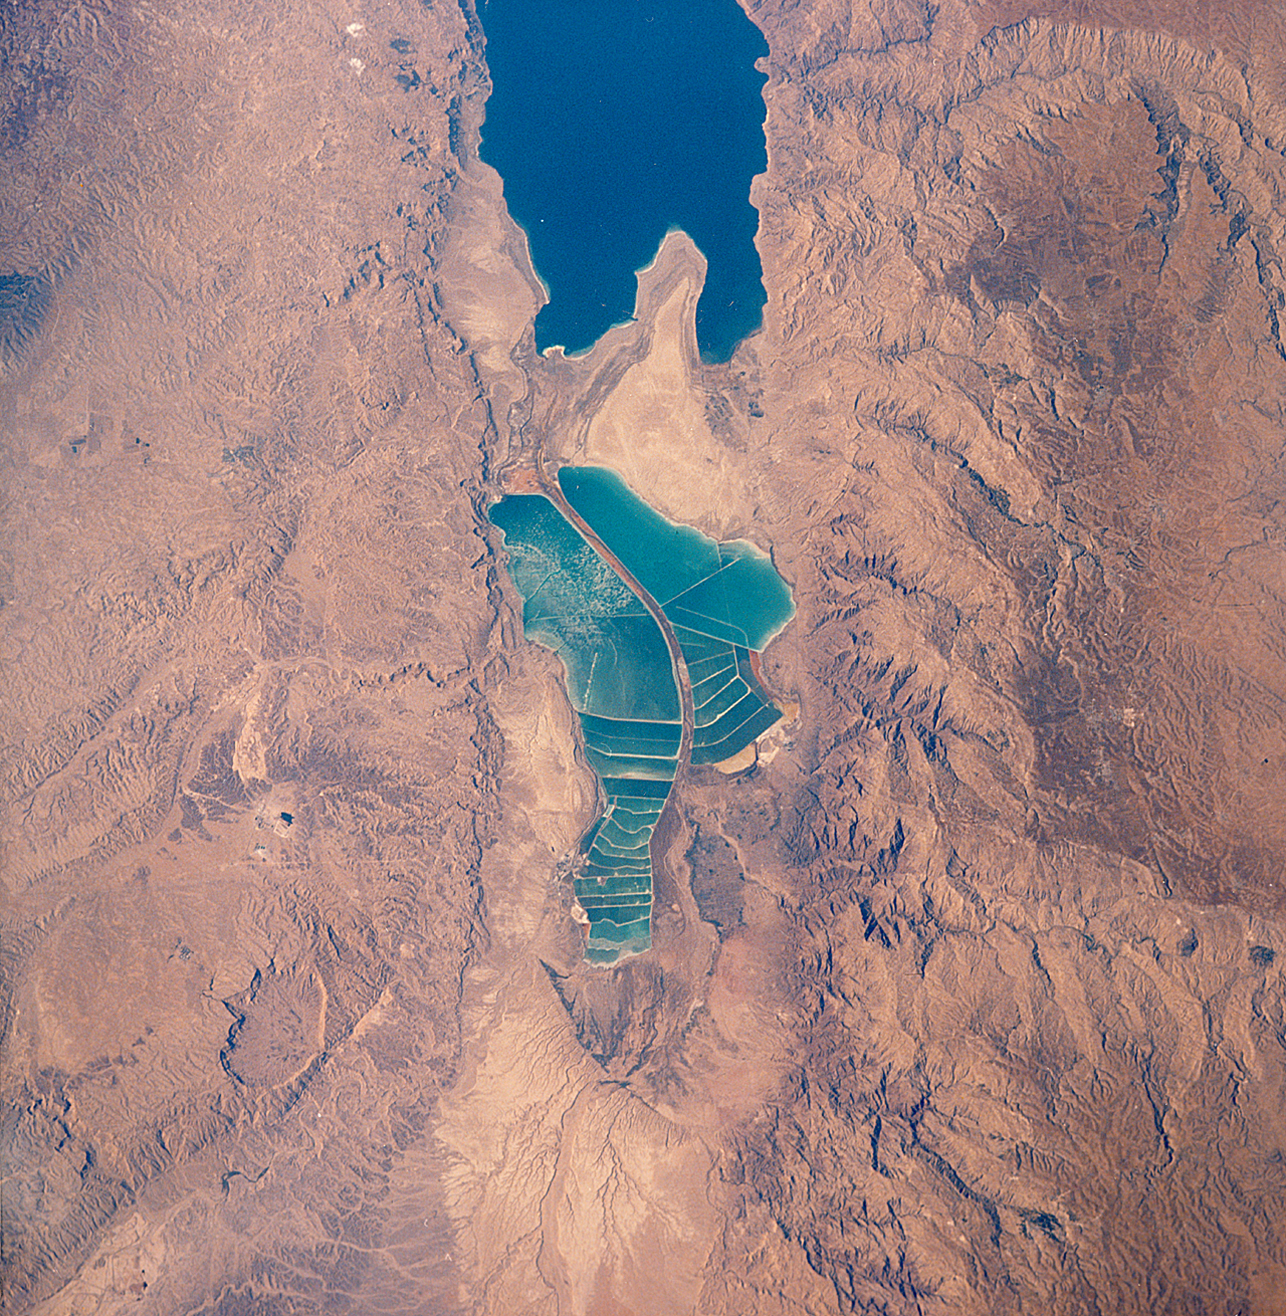 Dead Sea, taken in August 1989 by U.S. Space Shuttle mission STS-28.